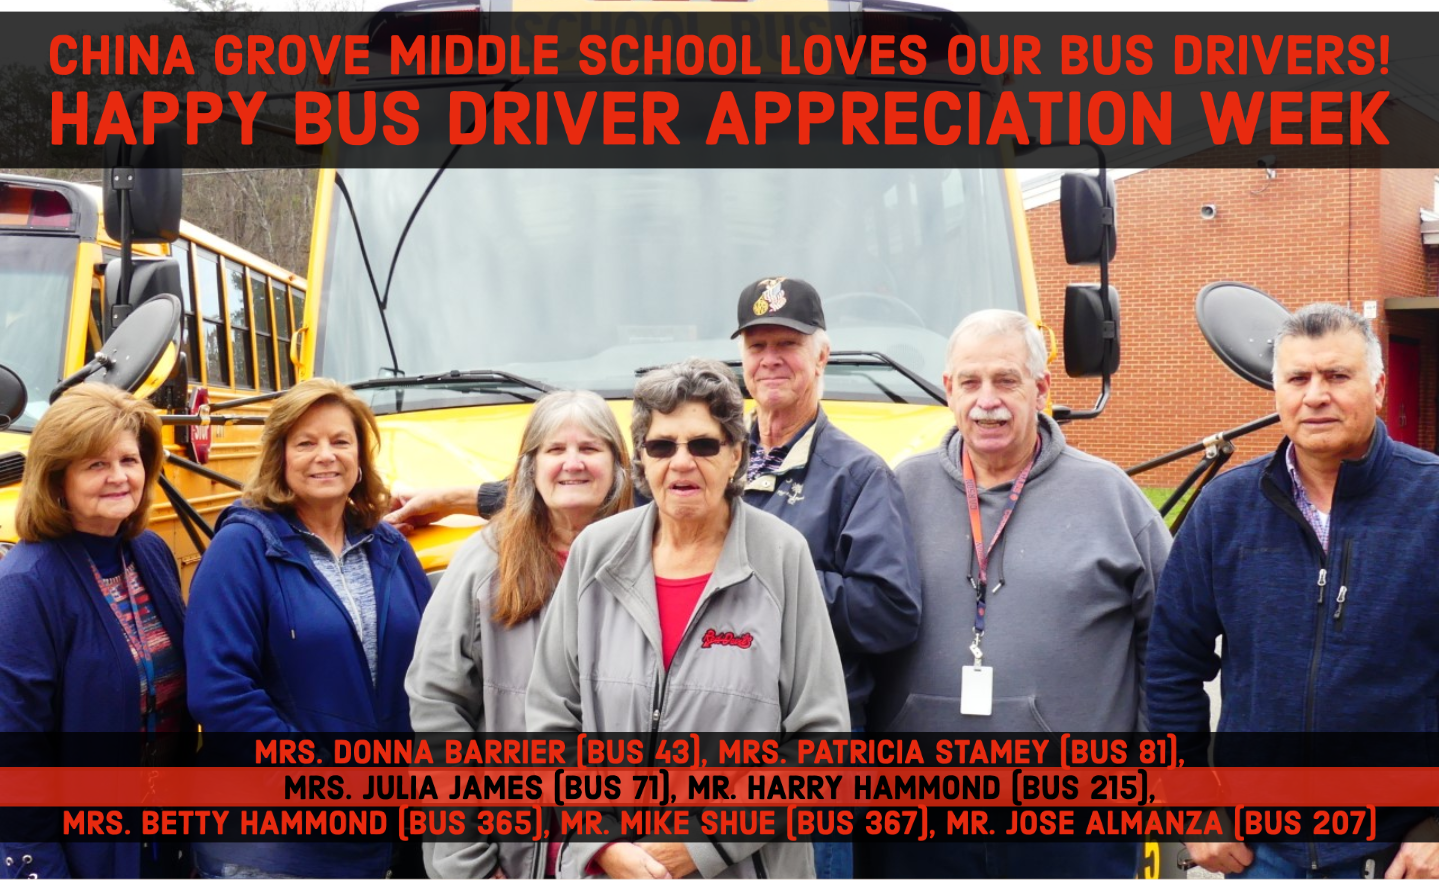 CGMS Loves Our Bus Drivers